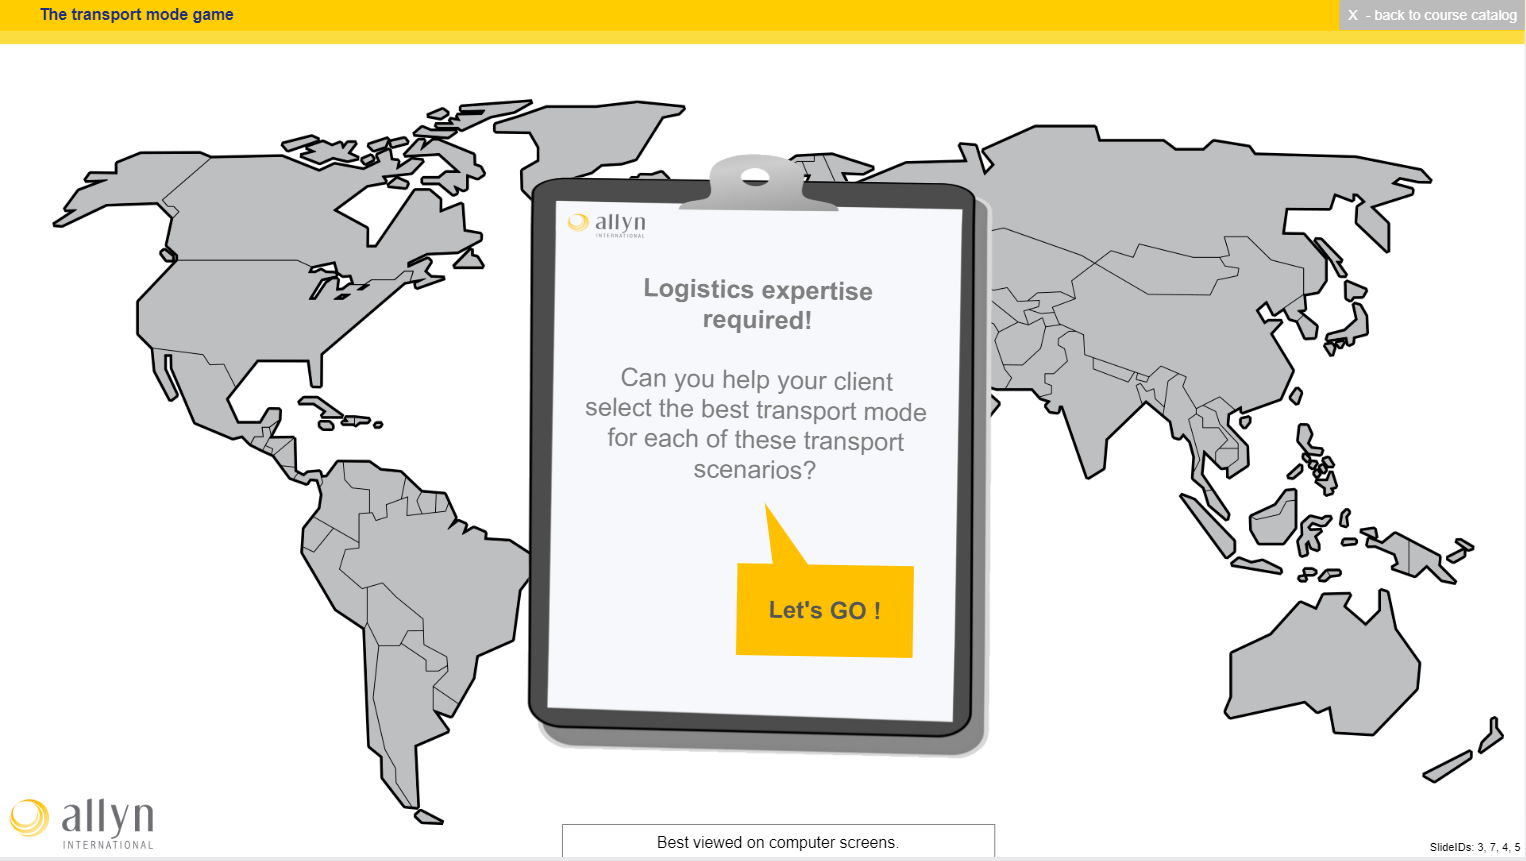 The first page of our logistics transport game used to validate some knowledge acquired in our logistics training courses